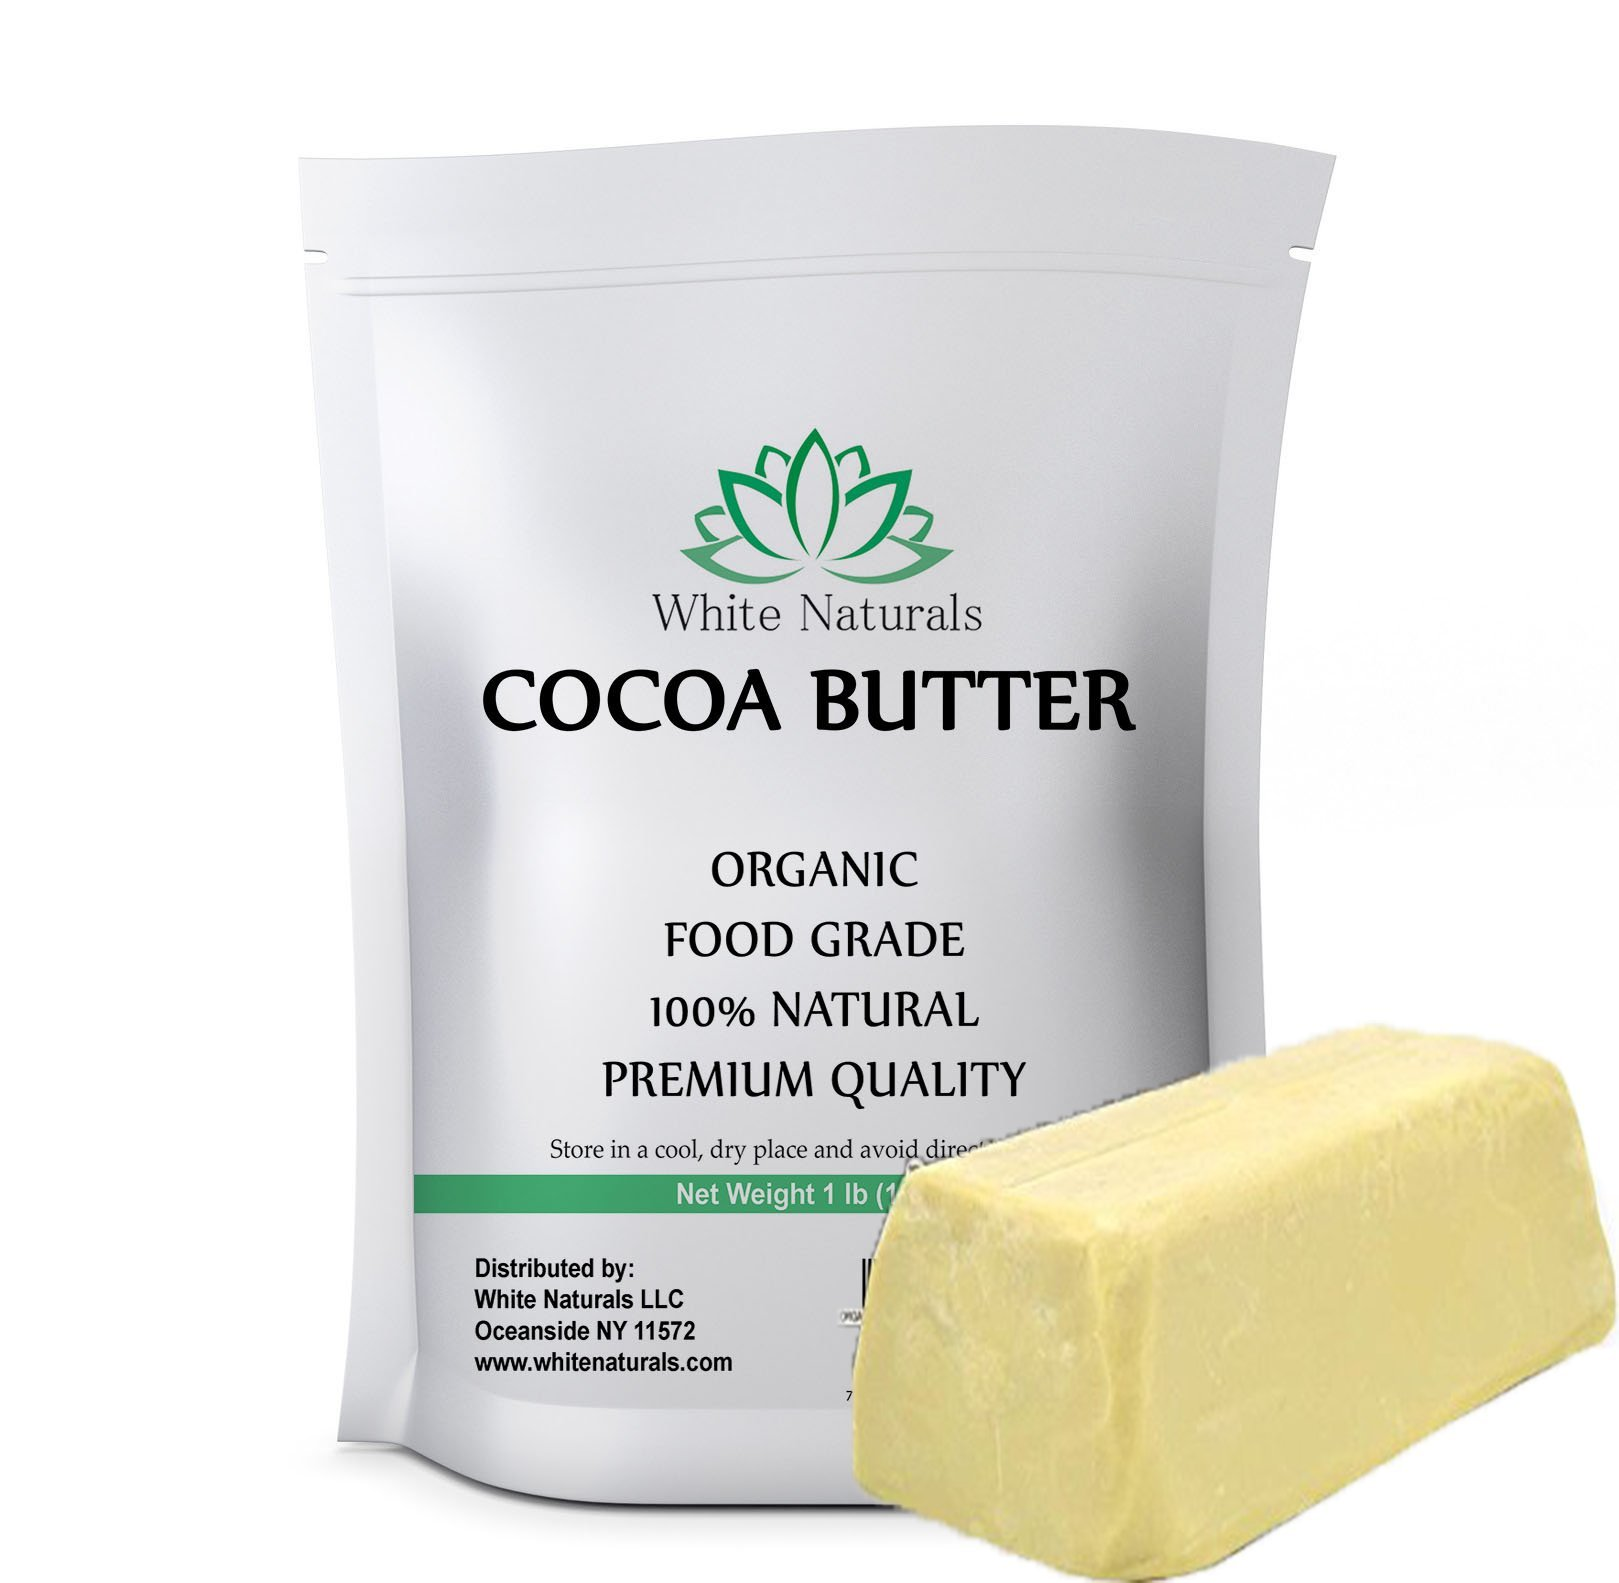 Organic Raw Cocoa Butter 1 lb, Food Grade, Unrefined, Pure, Natural, Perfect For Skin Care & Hair Care, All DIY Recipes,16 oz By White Naturals